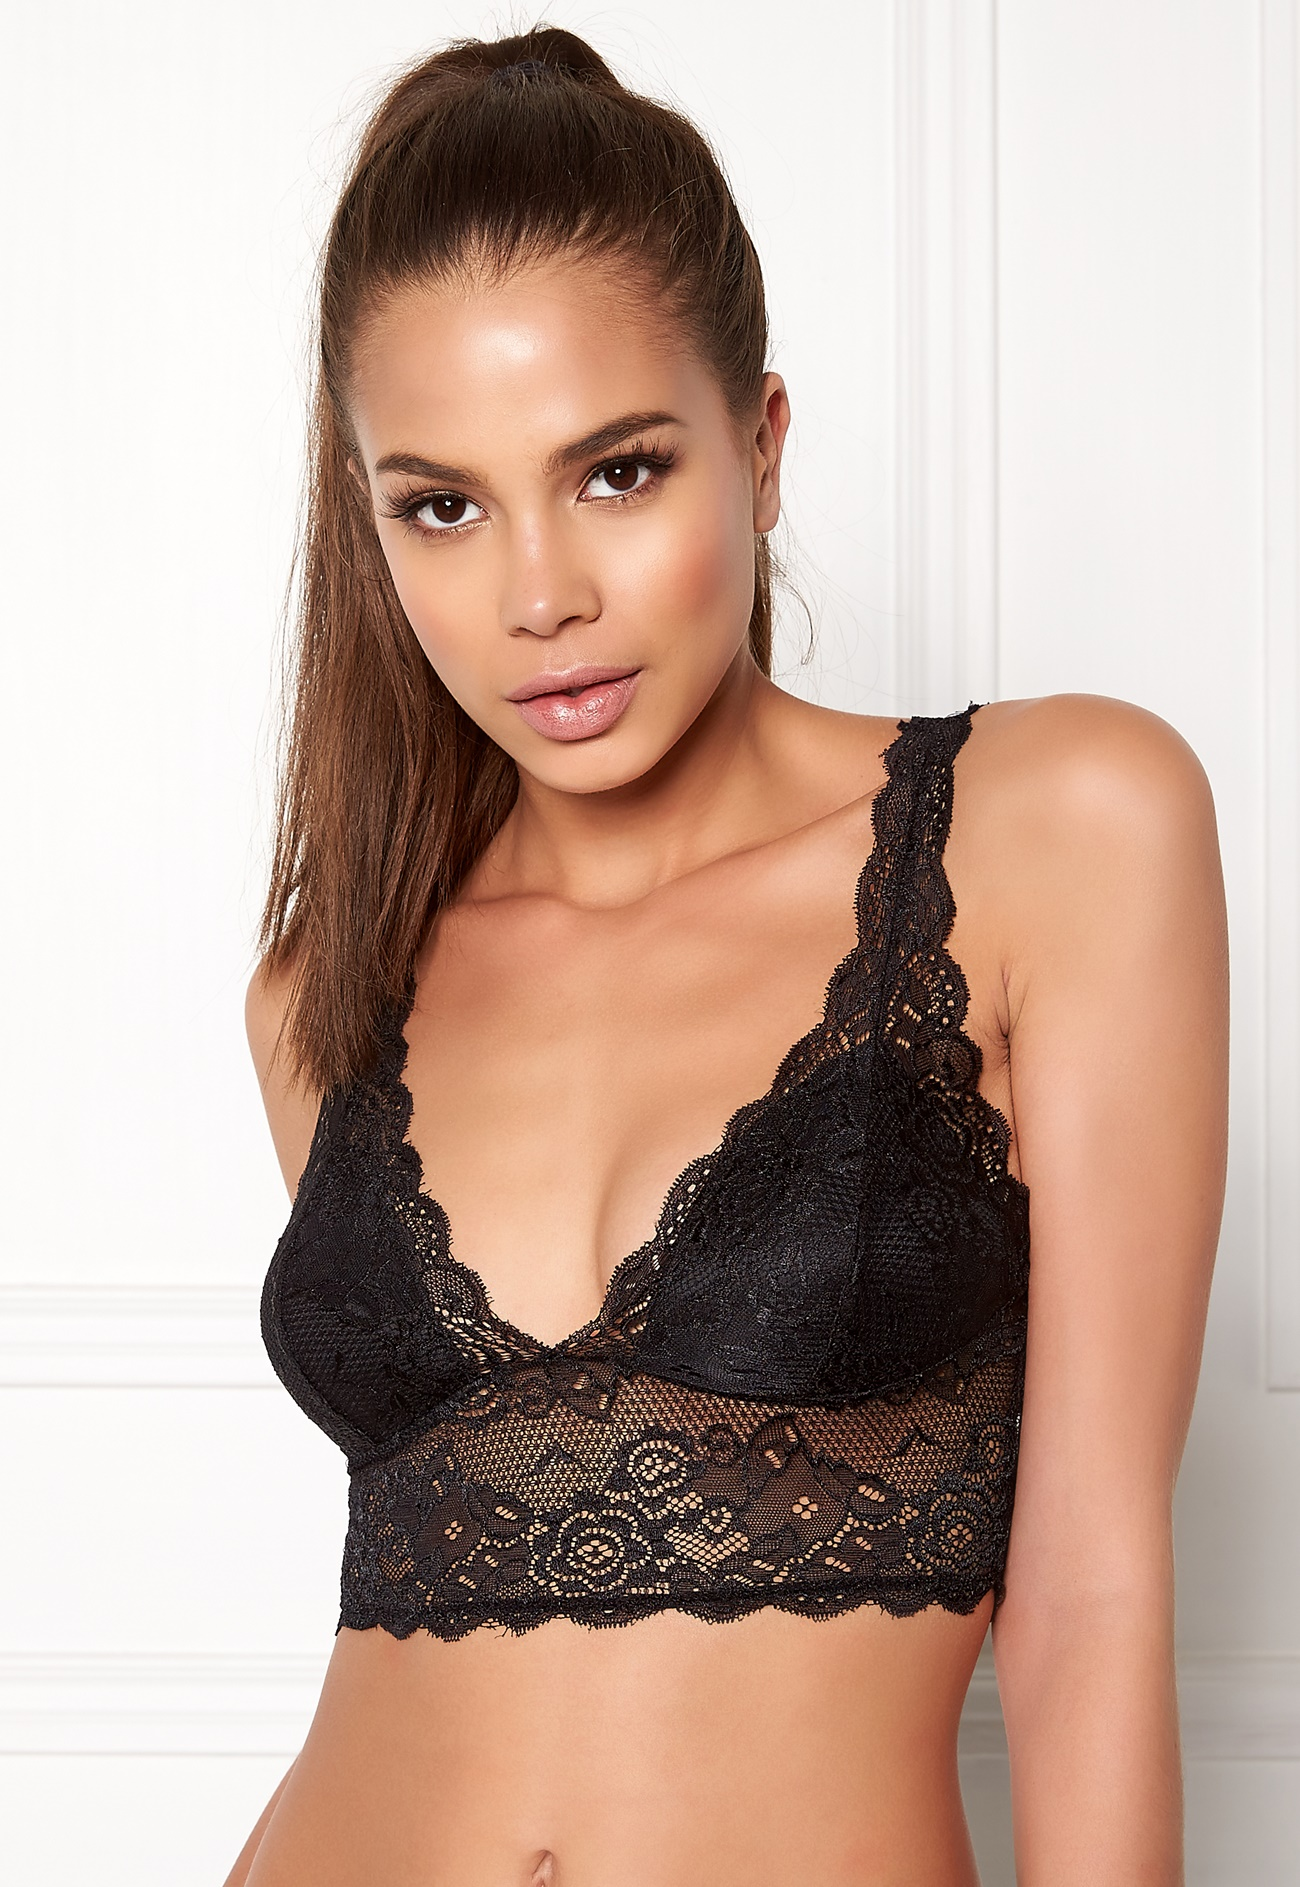 Our Push-Up Strapless Bra does it all with 5-ways to wear for maximum versatility. It has a snug fit that remains in place while providing dramatic lift and sexy cleavage.